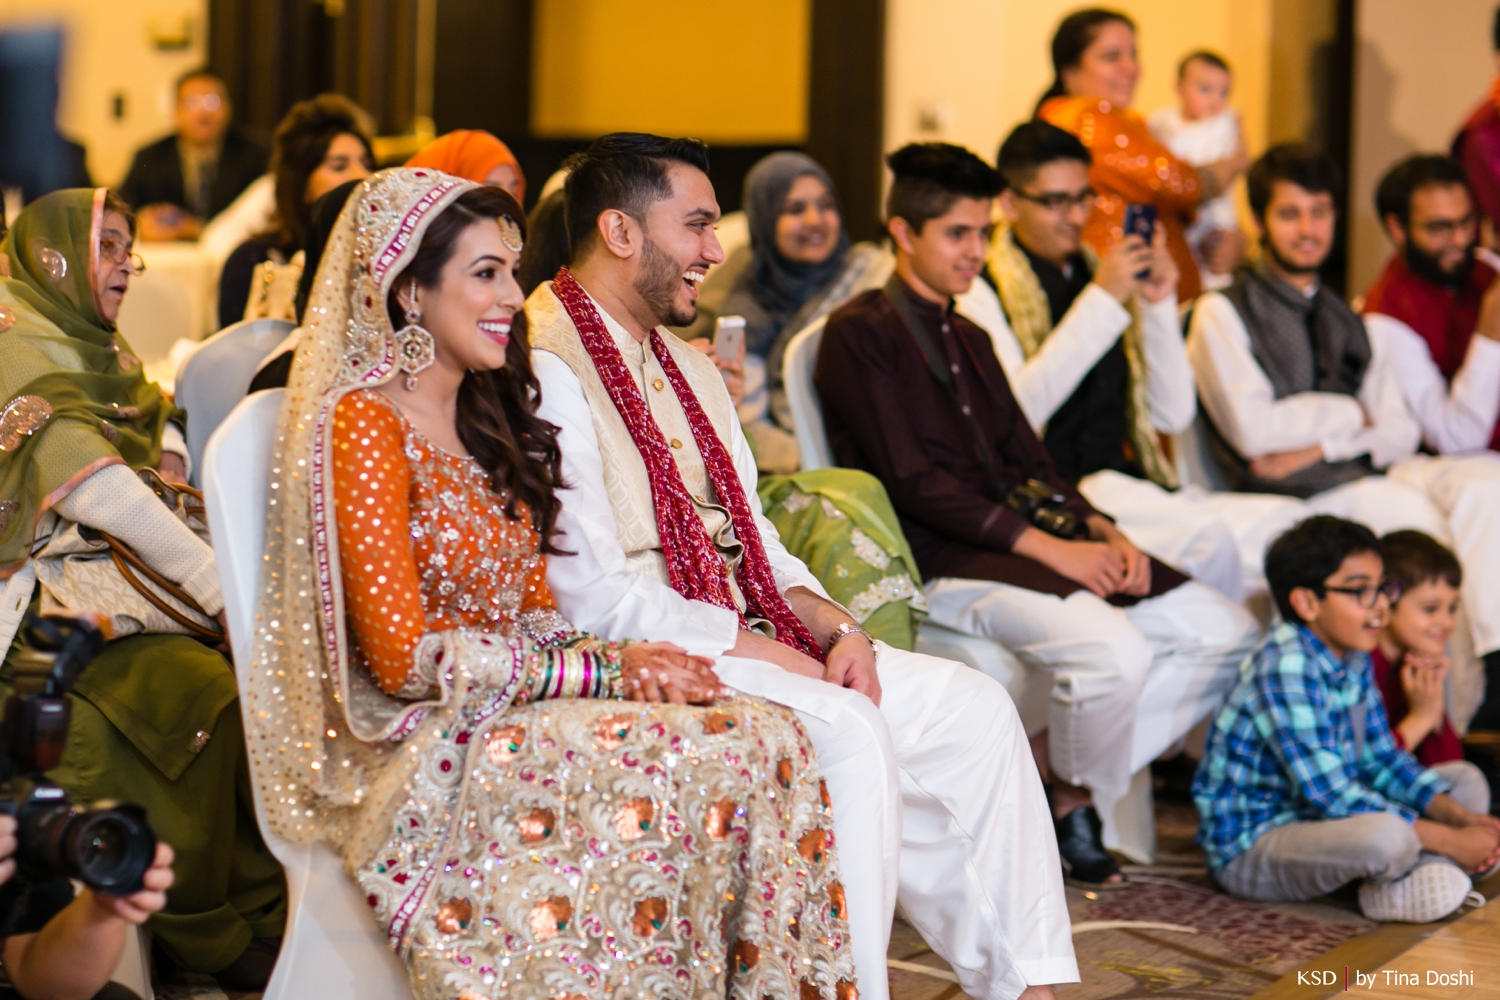 nj_south_asian_wedding_0063